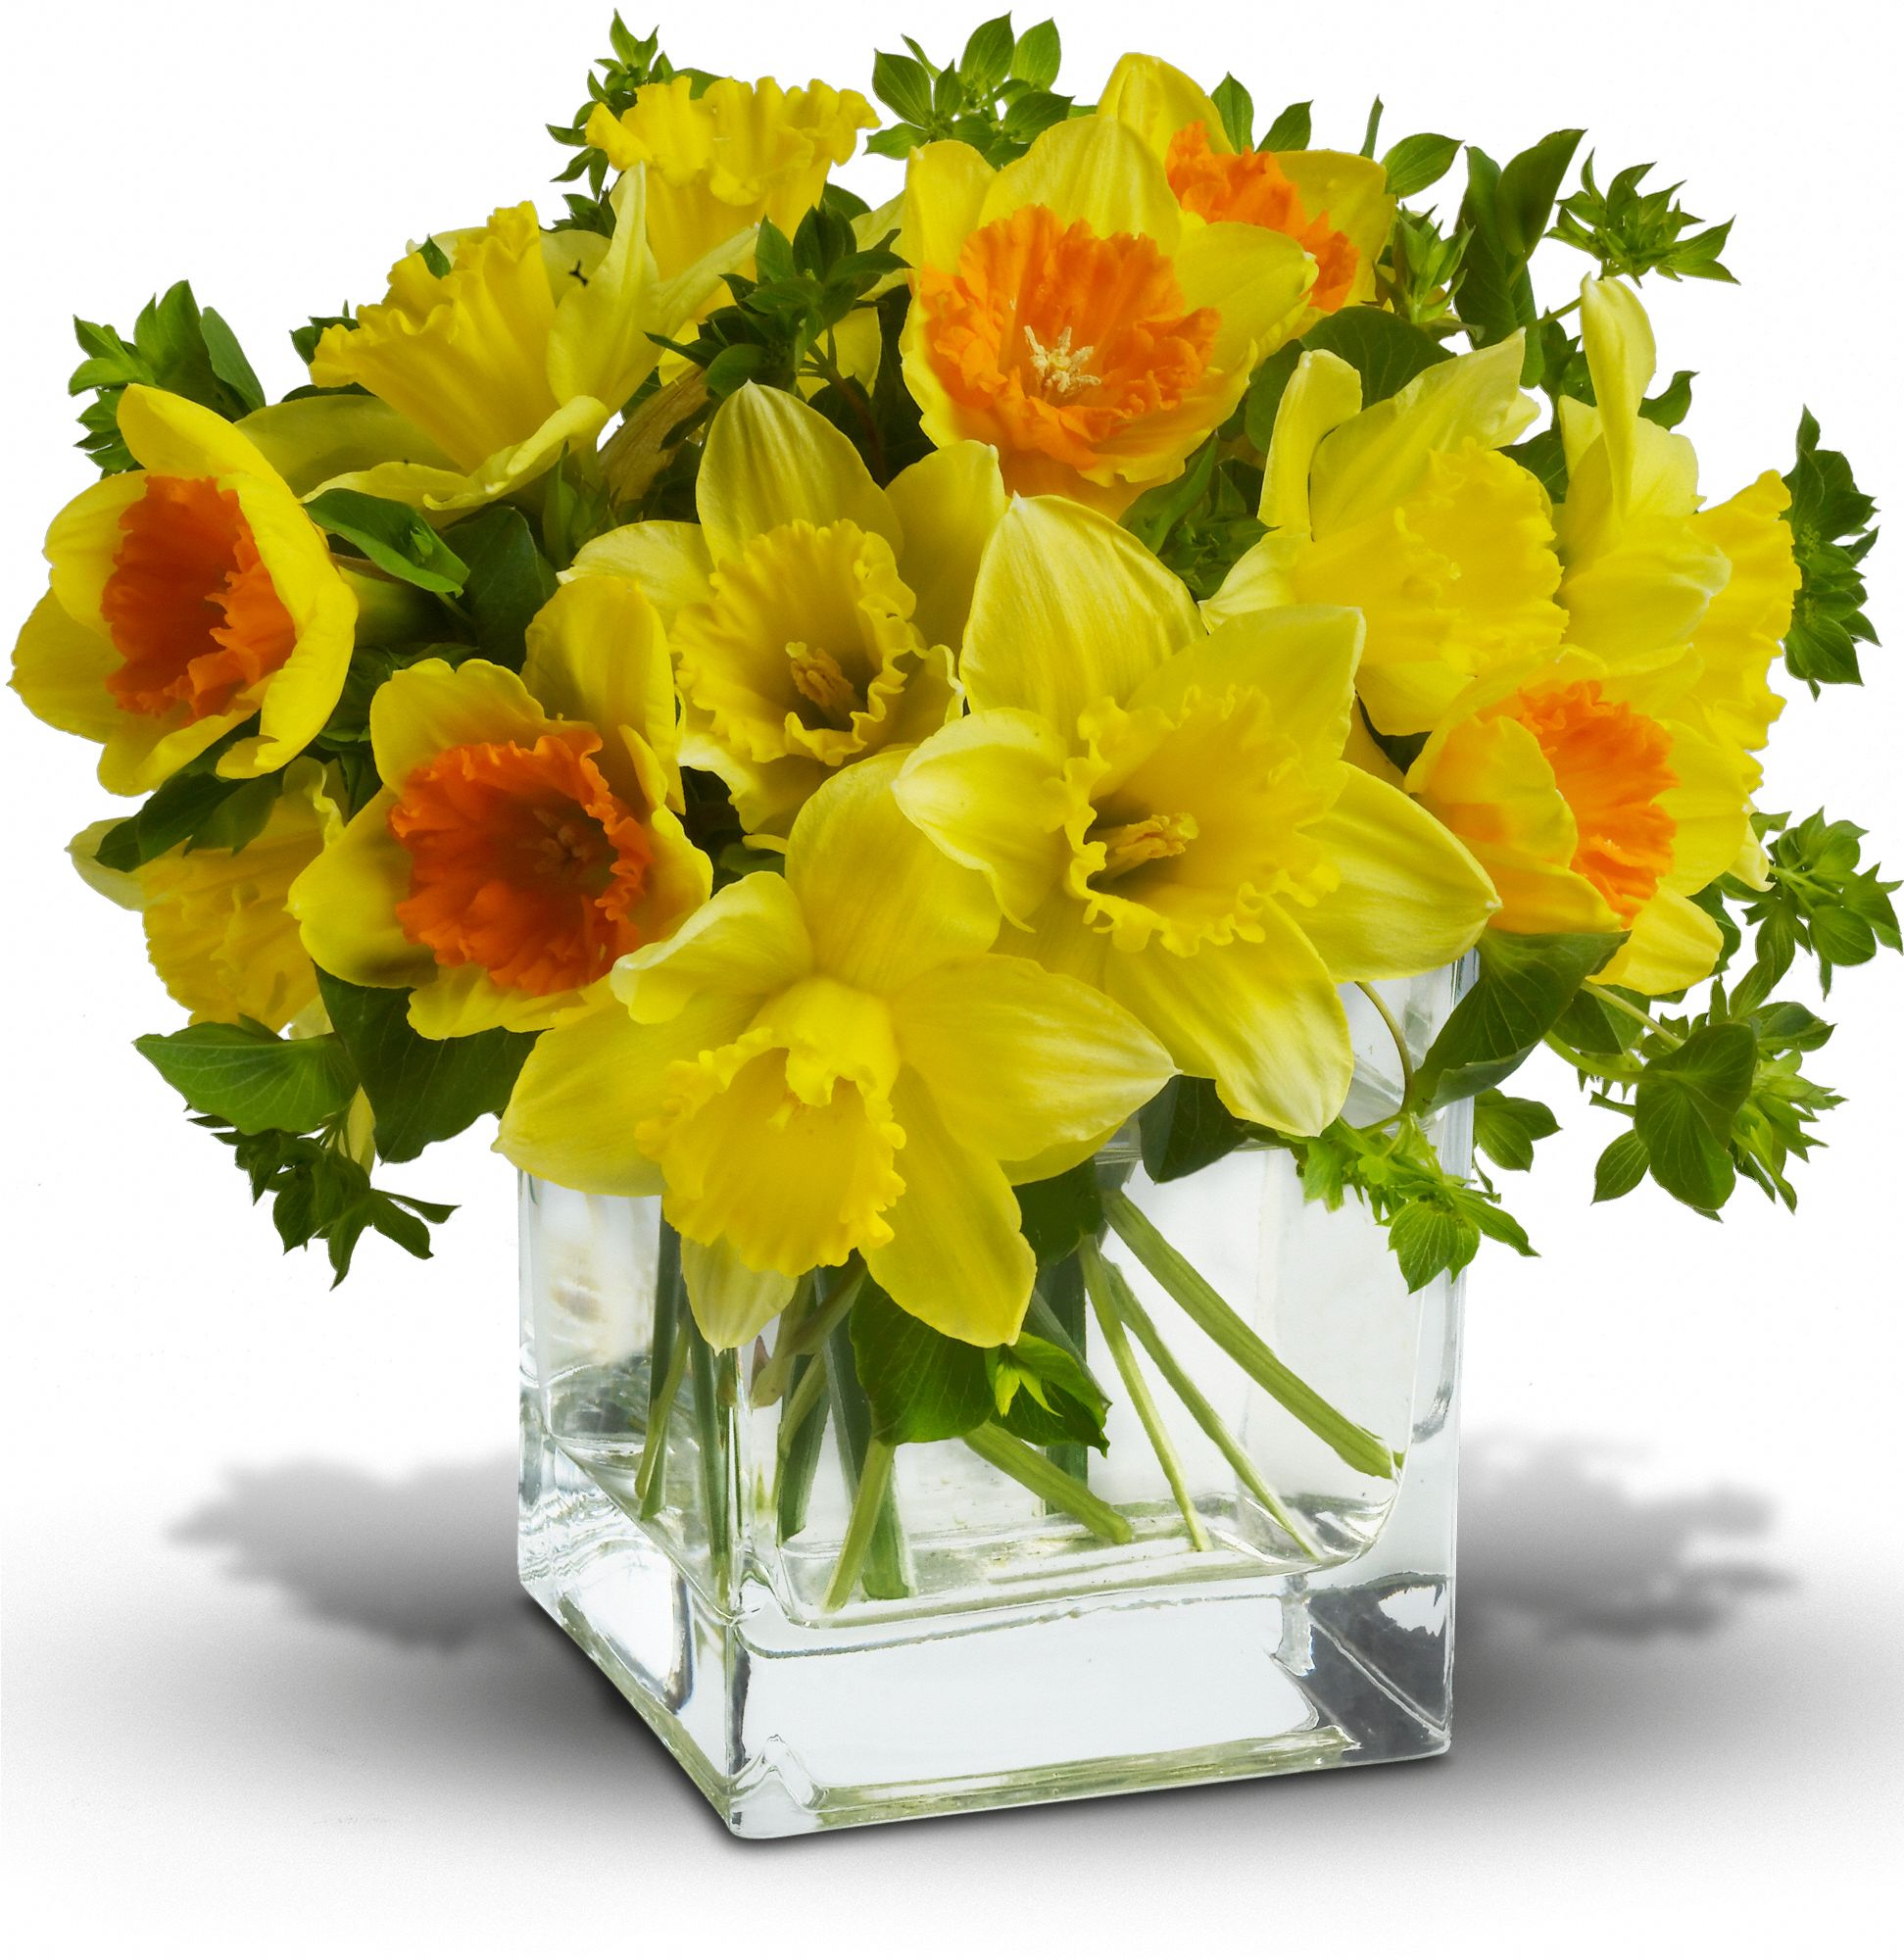 Shop for Narcissus / Daffodils